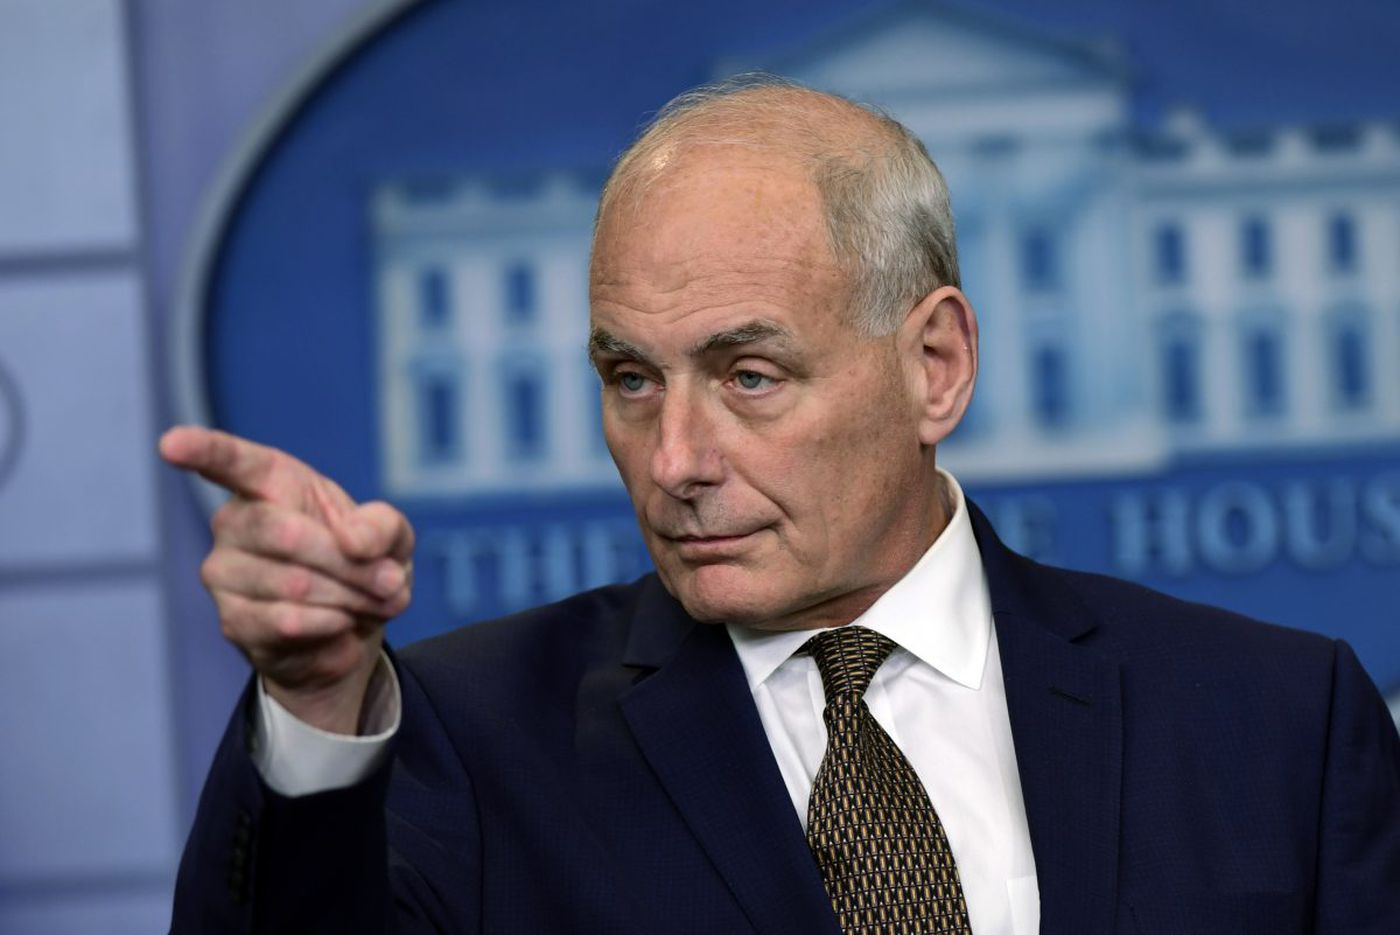 John Kelly, Robert E. Lee, and the incredibly dangerous fallacy of 'trusting the generals'